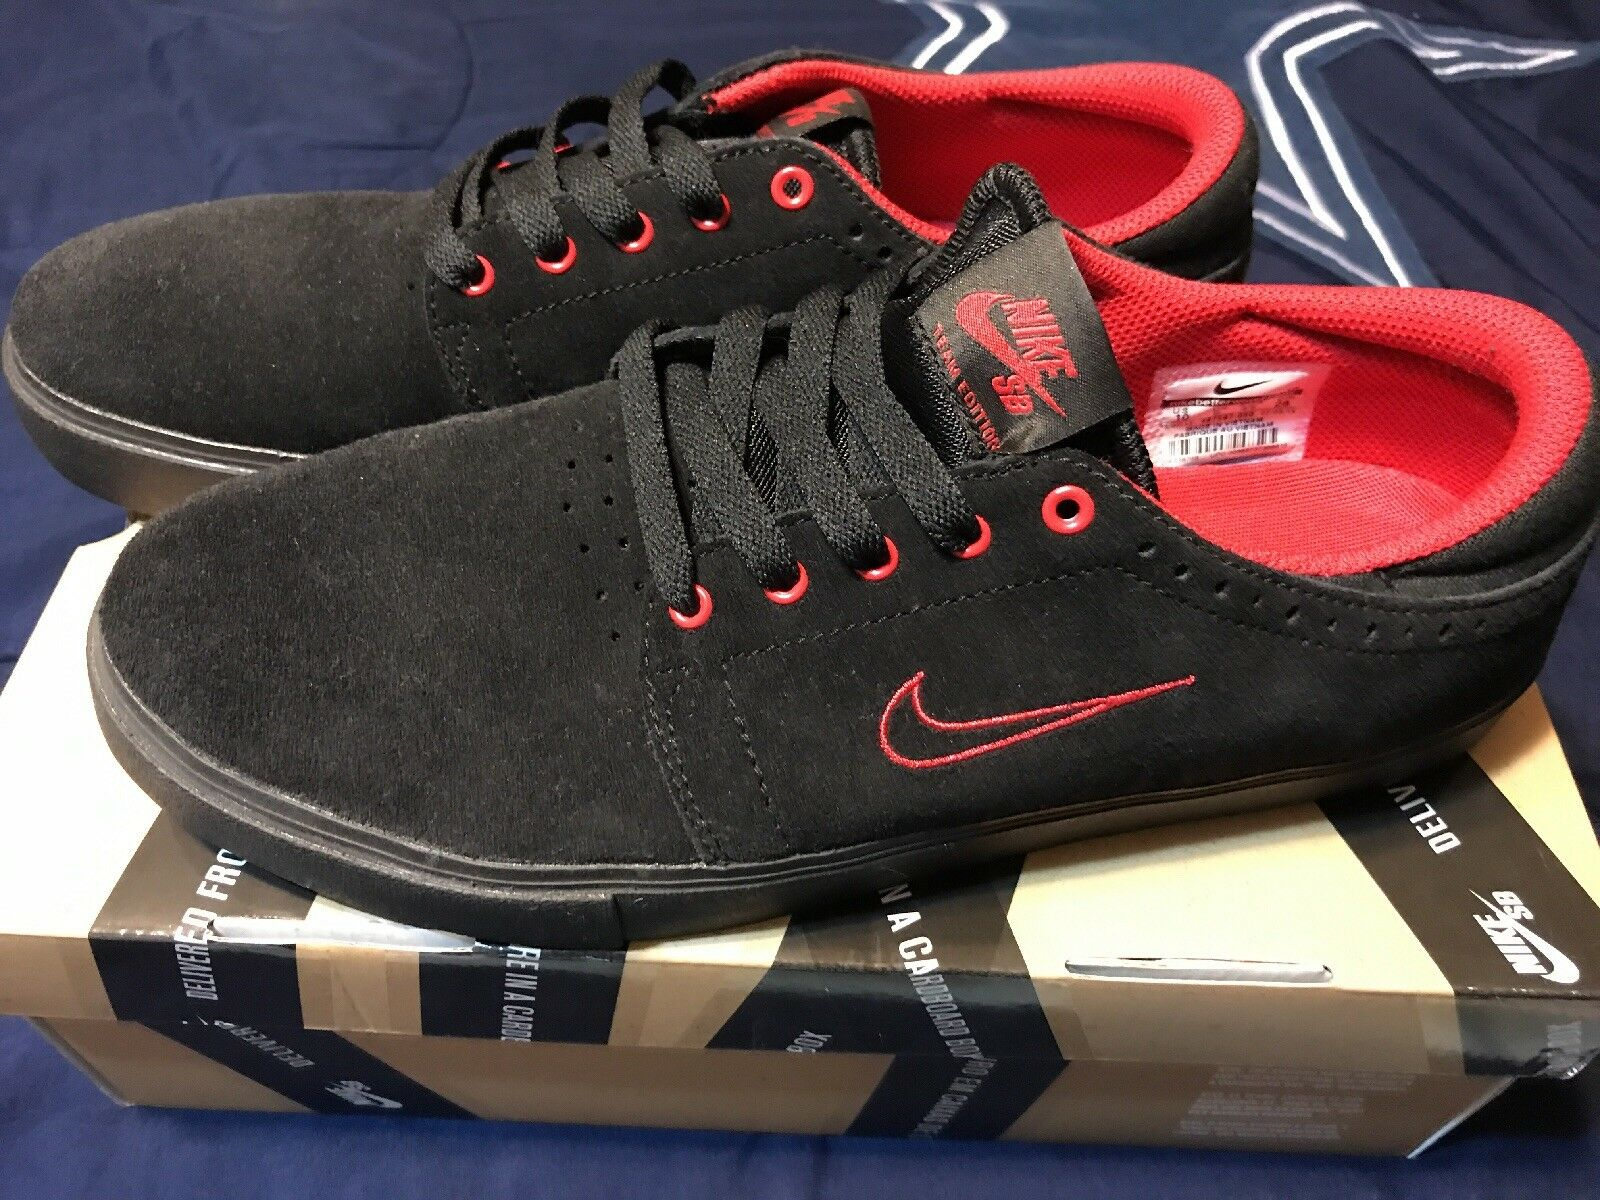 Nike SB Team Edition Black University Red Size 10 Worn Once